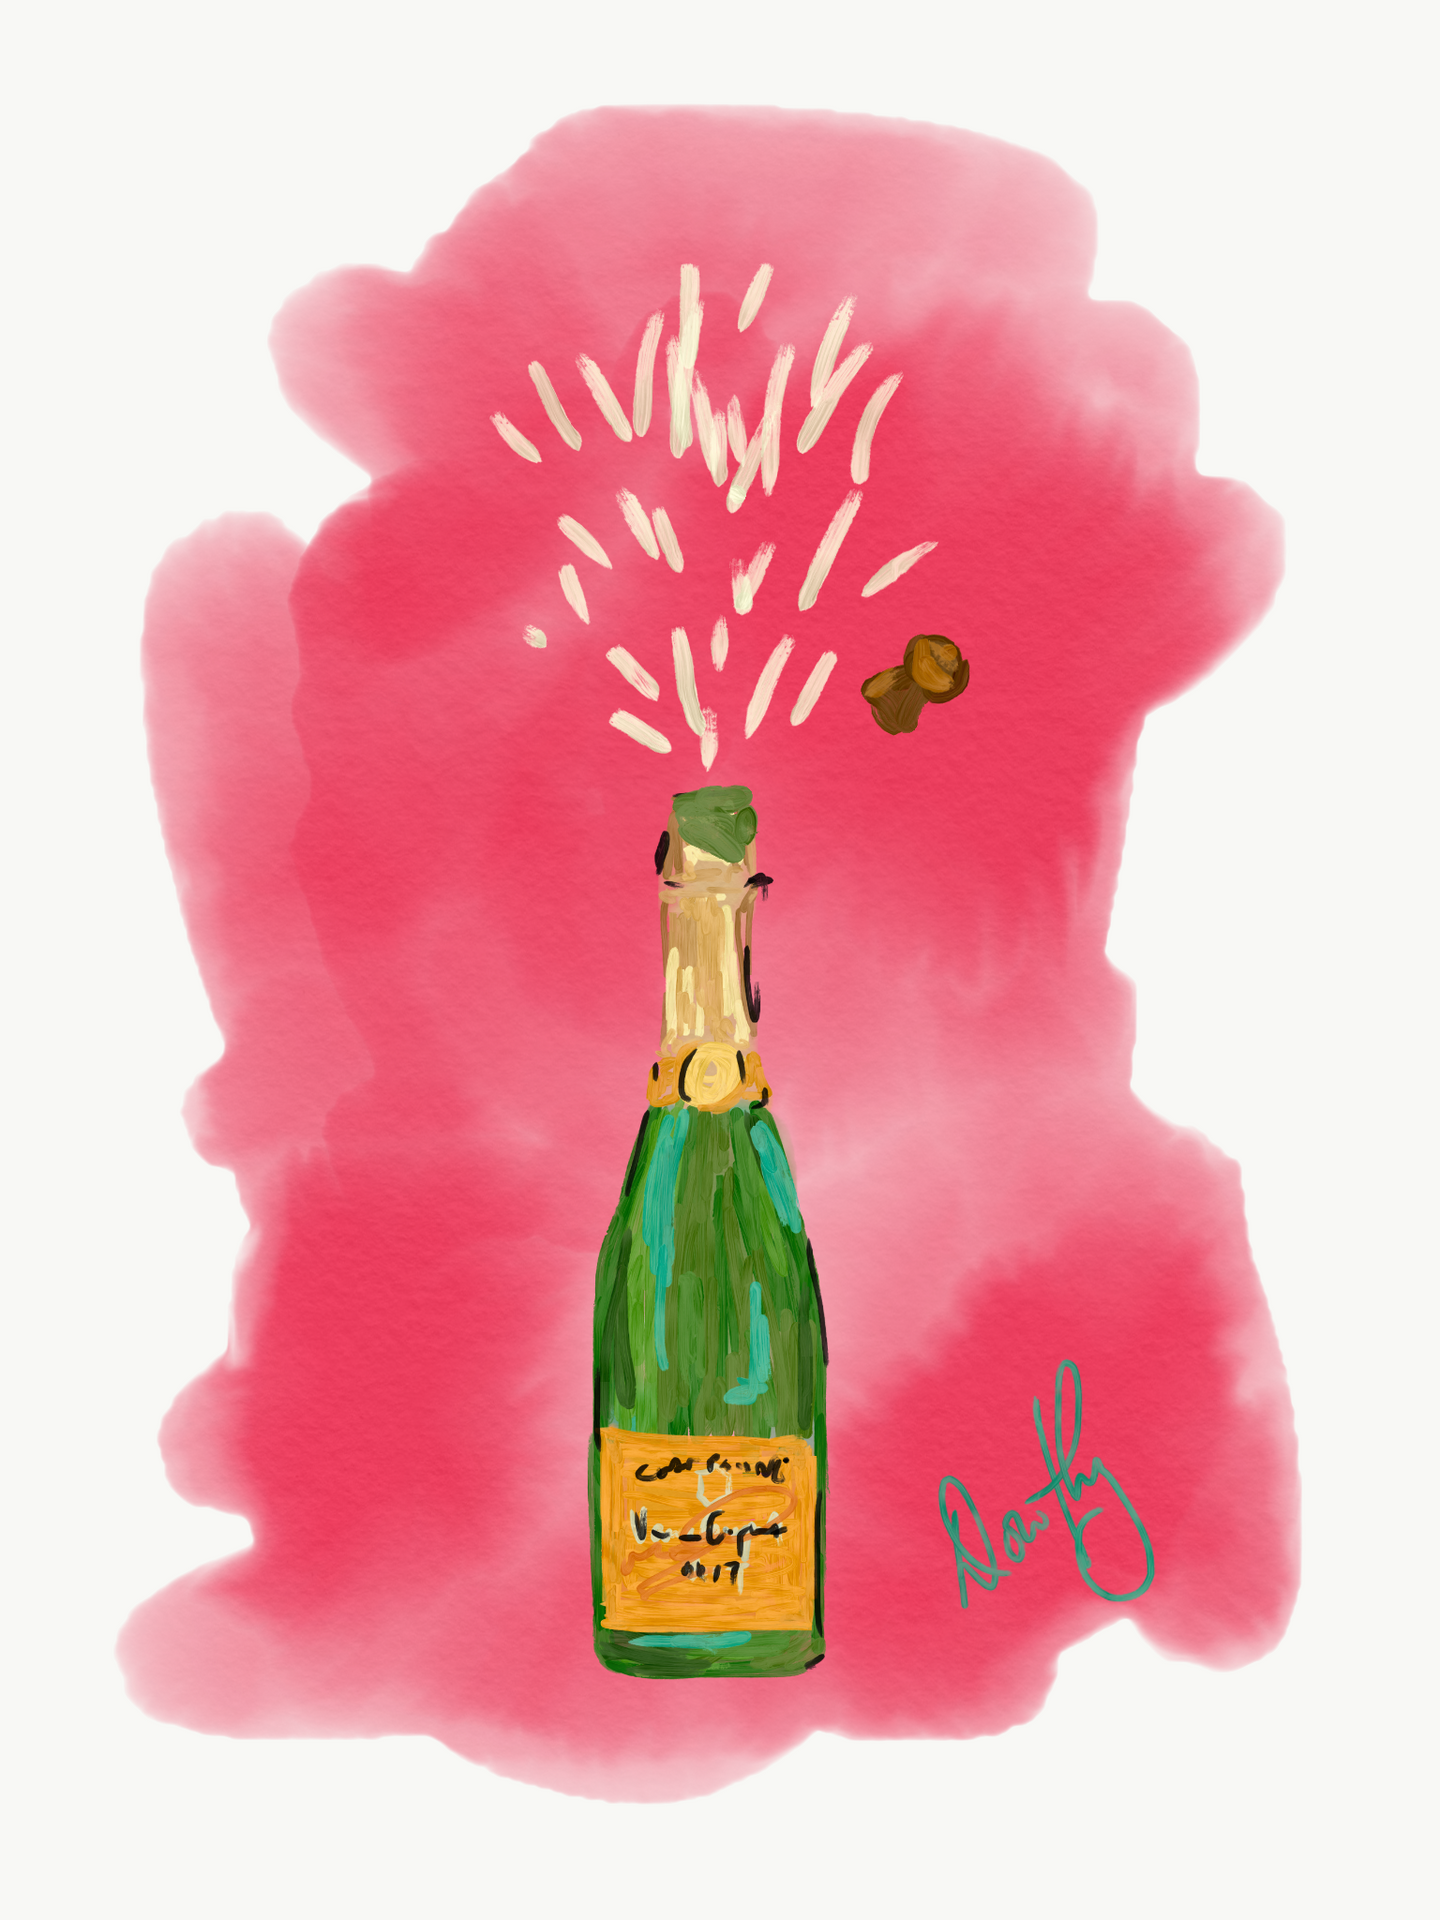 Veuve Clicquot - Abstract Watercolor Pop